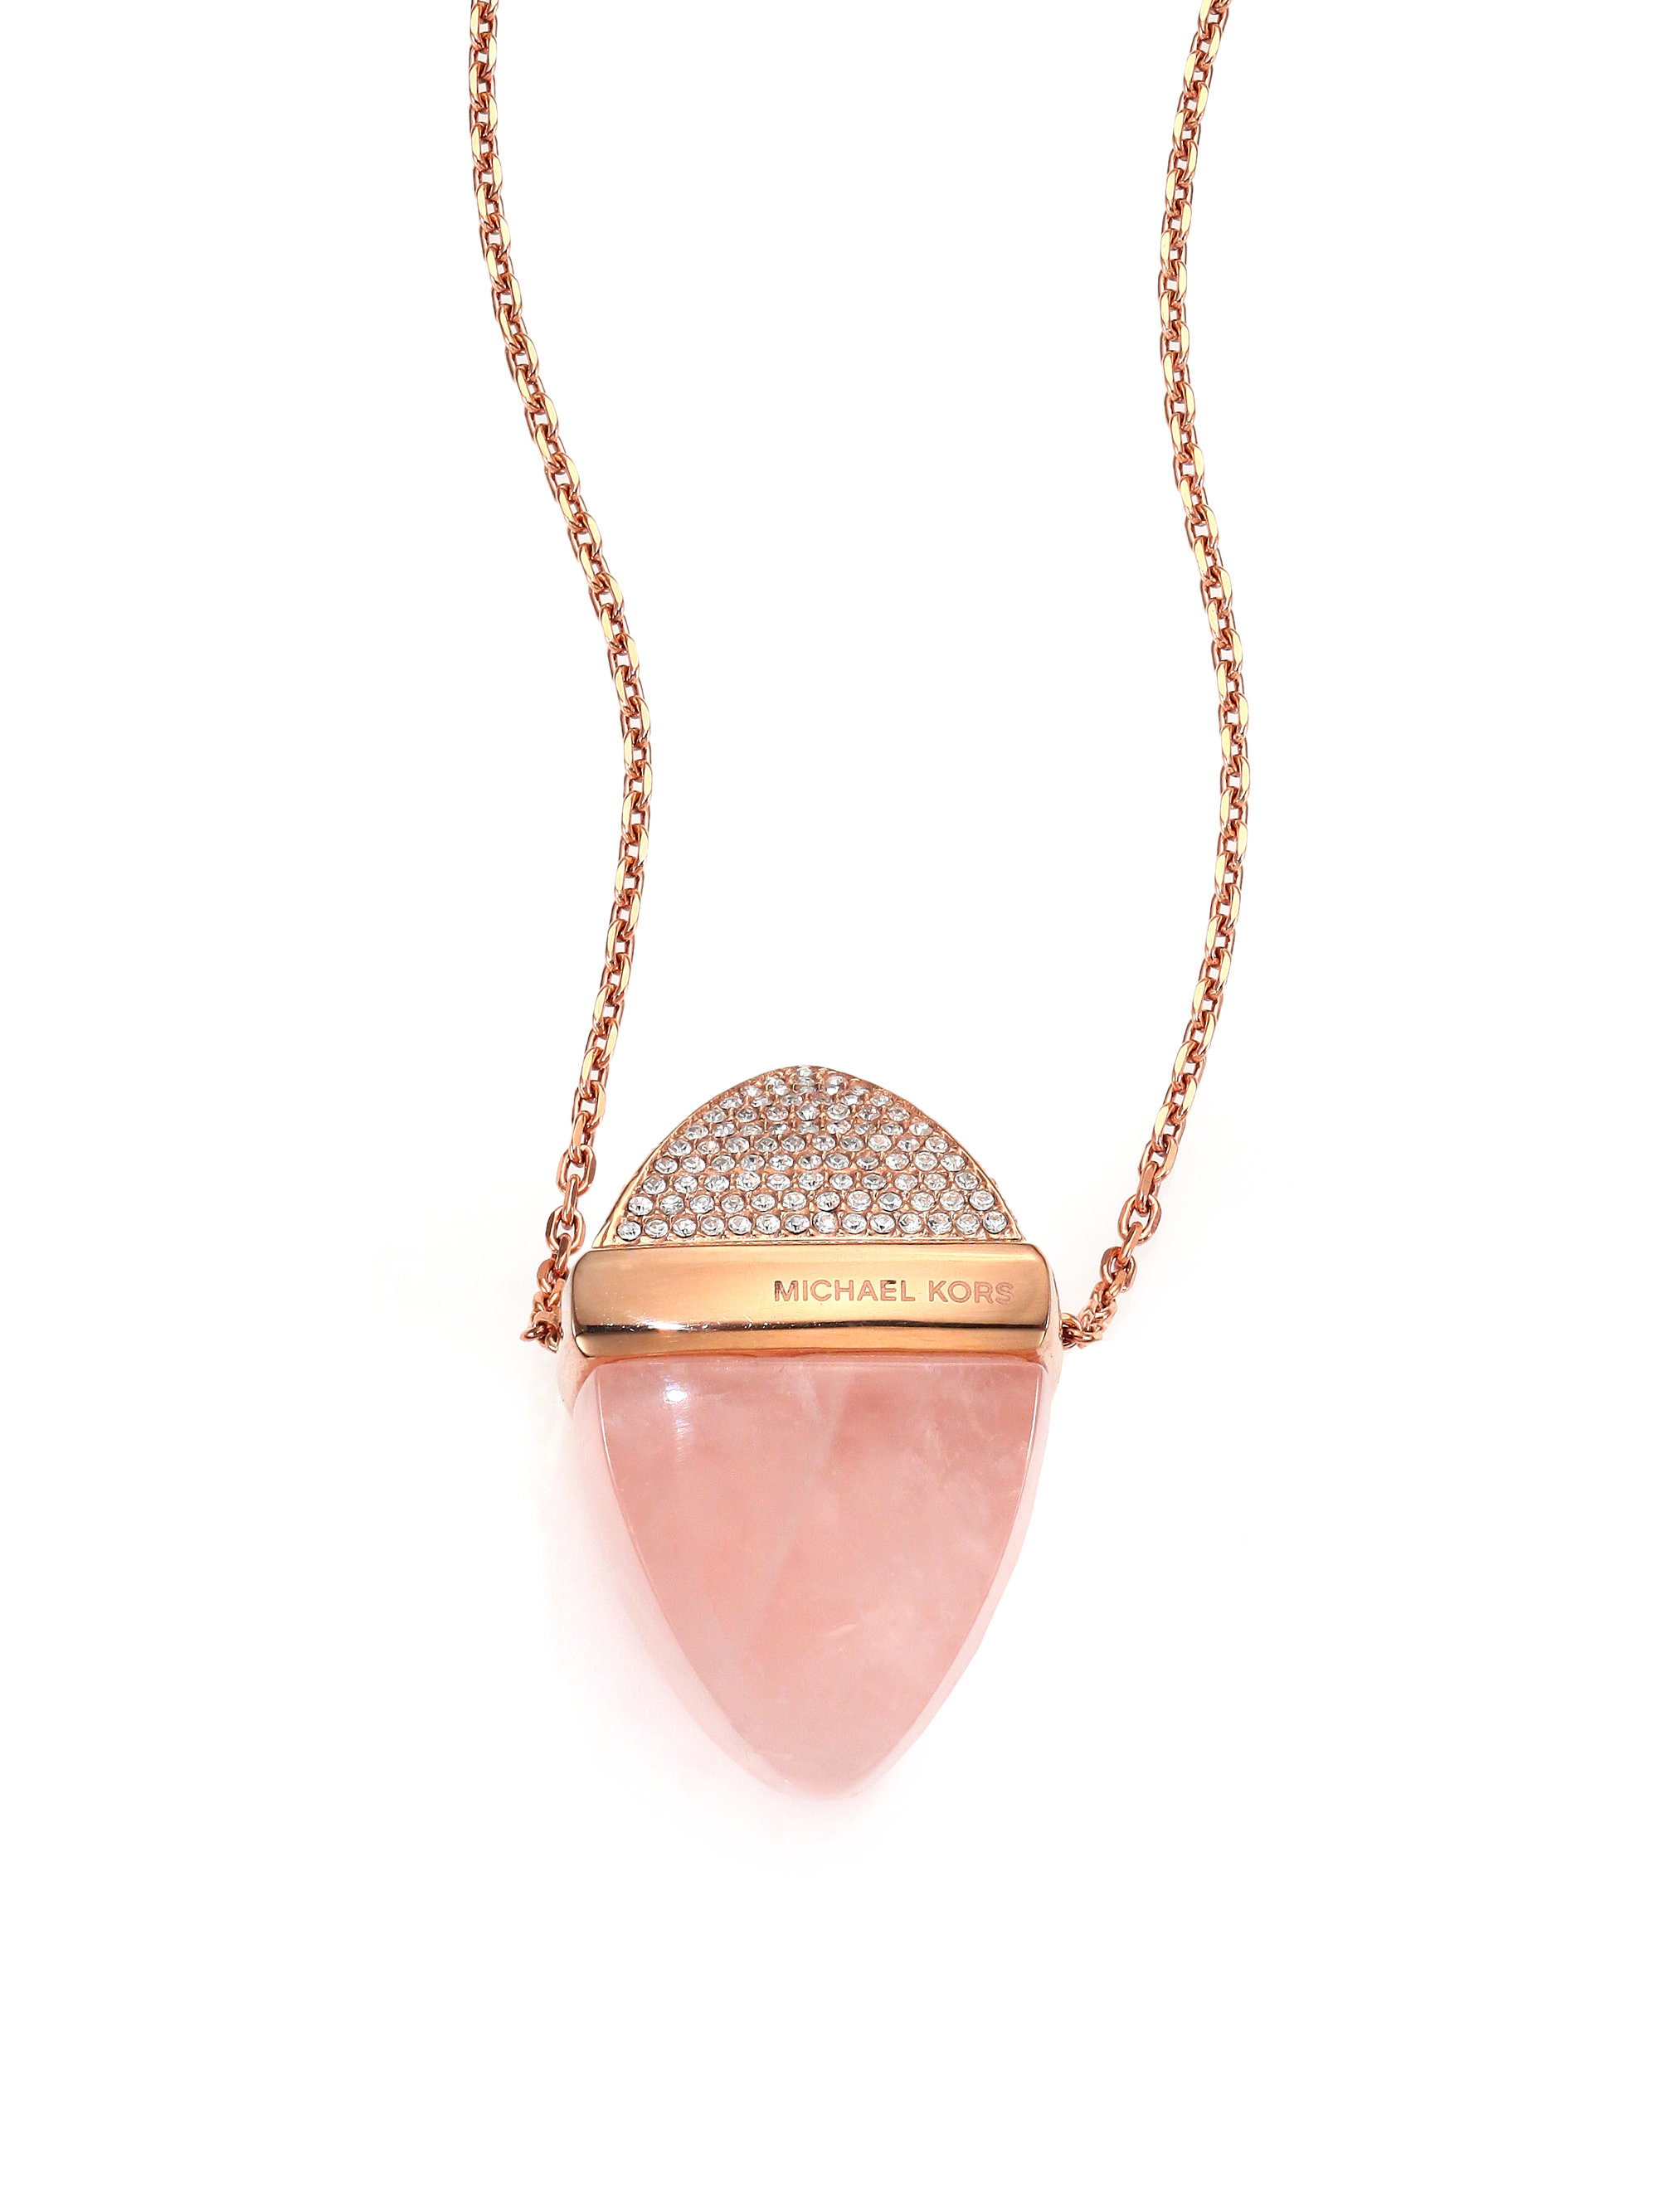 Michael kors rose quartz pave pendant necklace in pink lyst for Michael b jewelry death